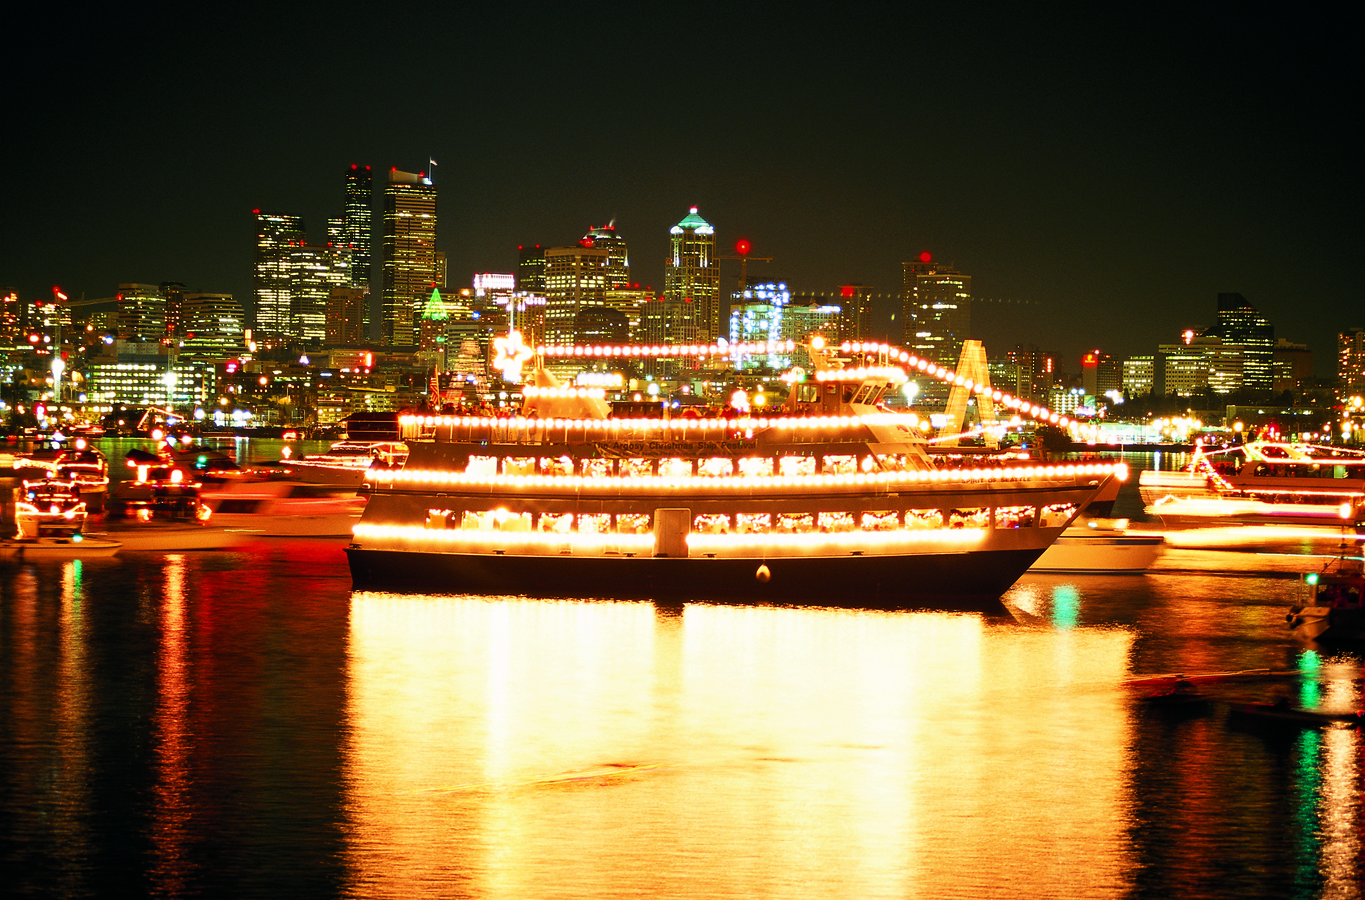 Cruise Into the Season: 65 Ways to See the Christmas Ship Festival